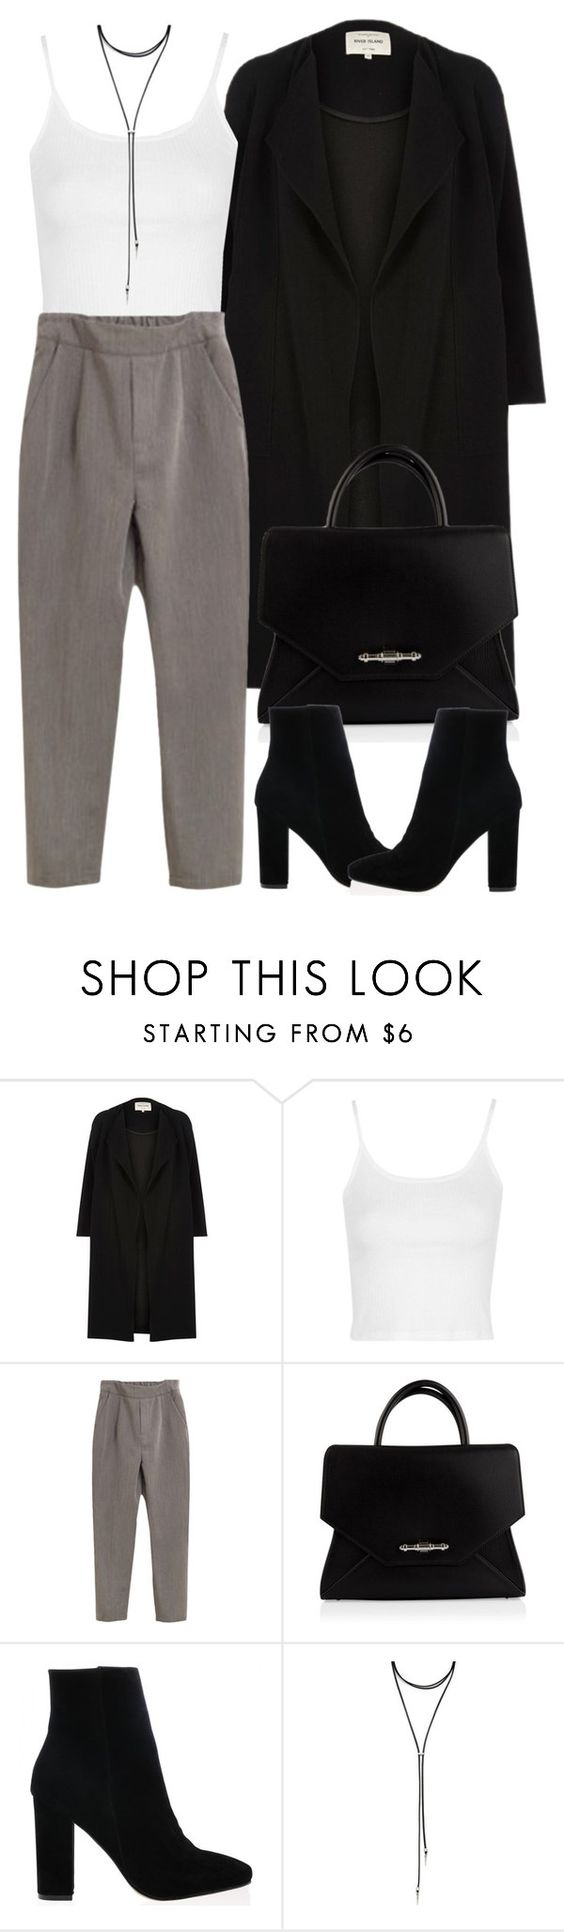 """Untitled #4133"" by maddie1128 ❤ liked on Polyvore featuring River Island, Topshop, Givenchy and Forever 21"